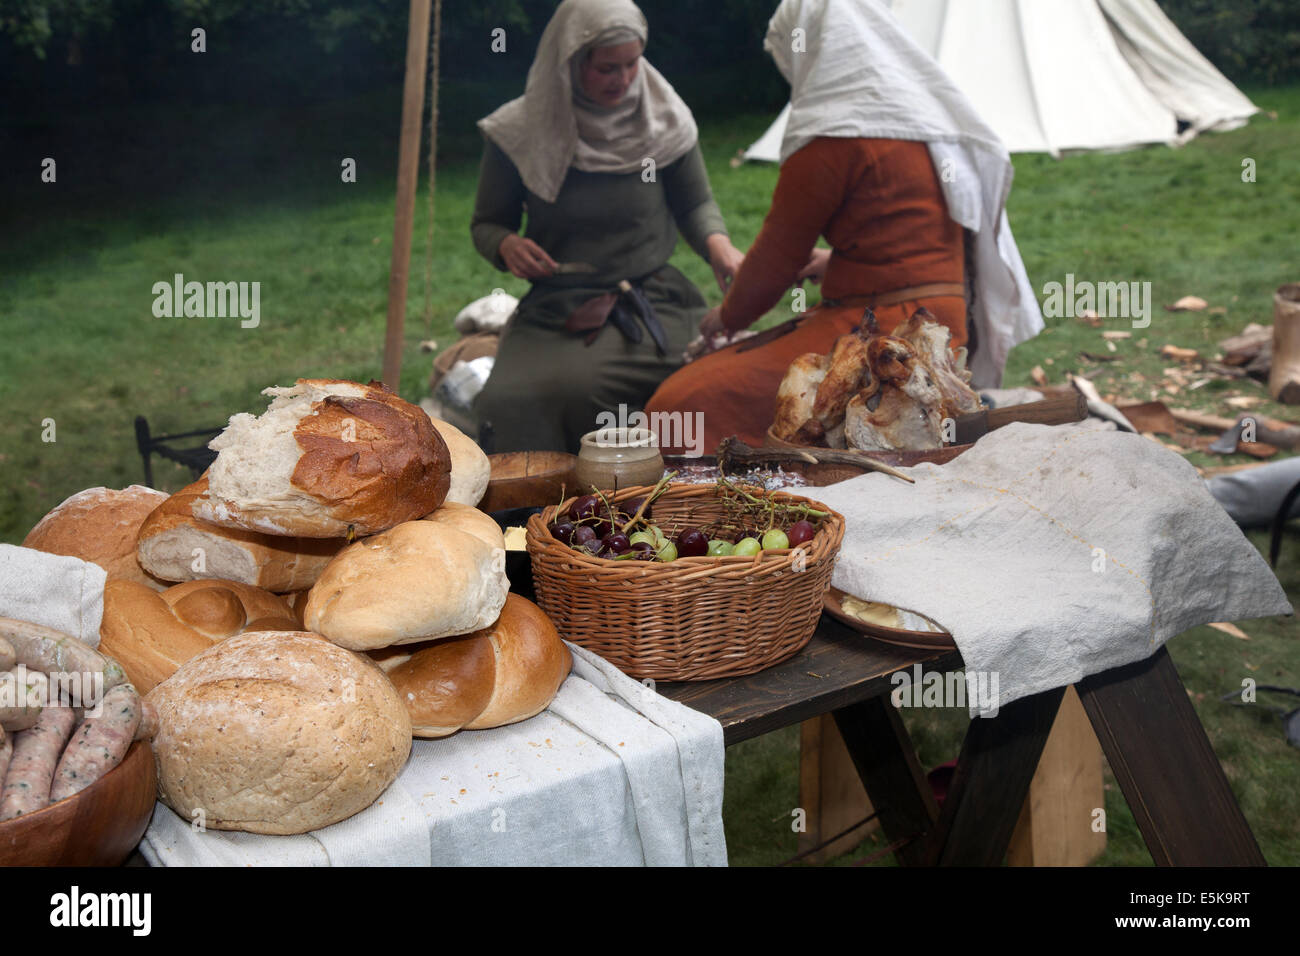 Beeston, Cheshire, UK 3rd August, 2014.  A Medieval Knights Tournament food table held at Beeston Castle in Cheshire, Stock Photo